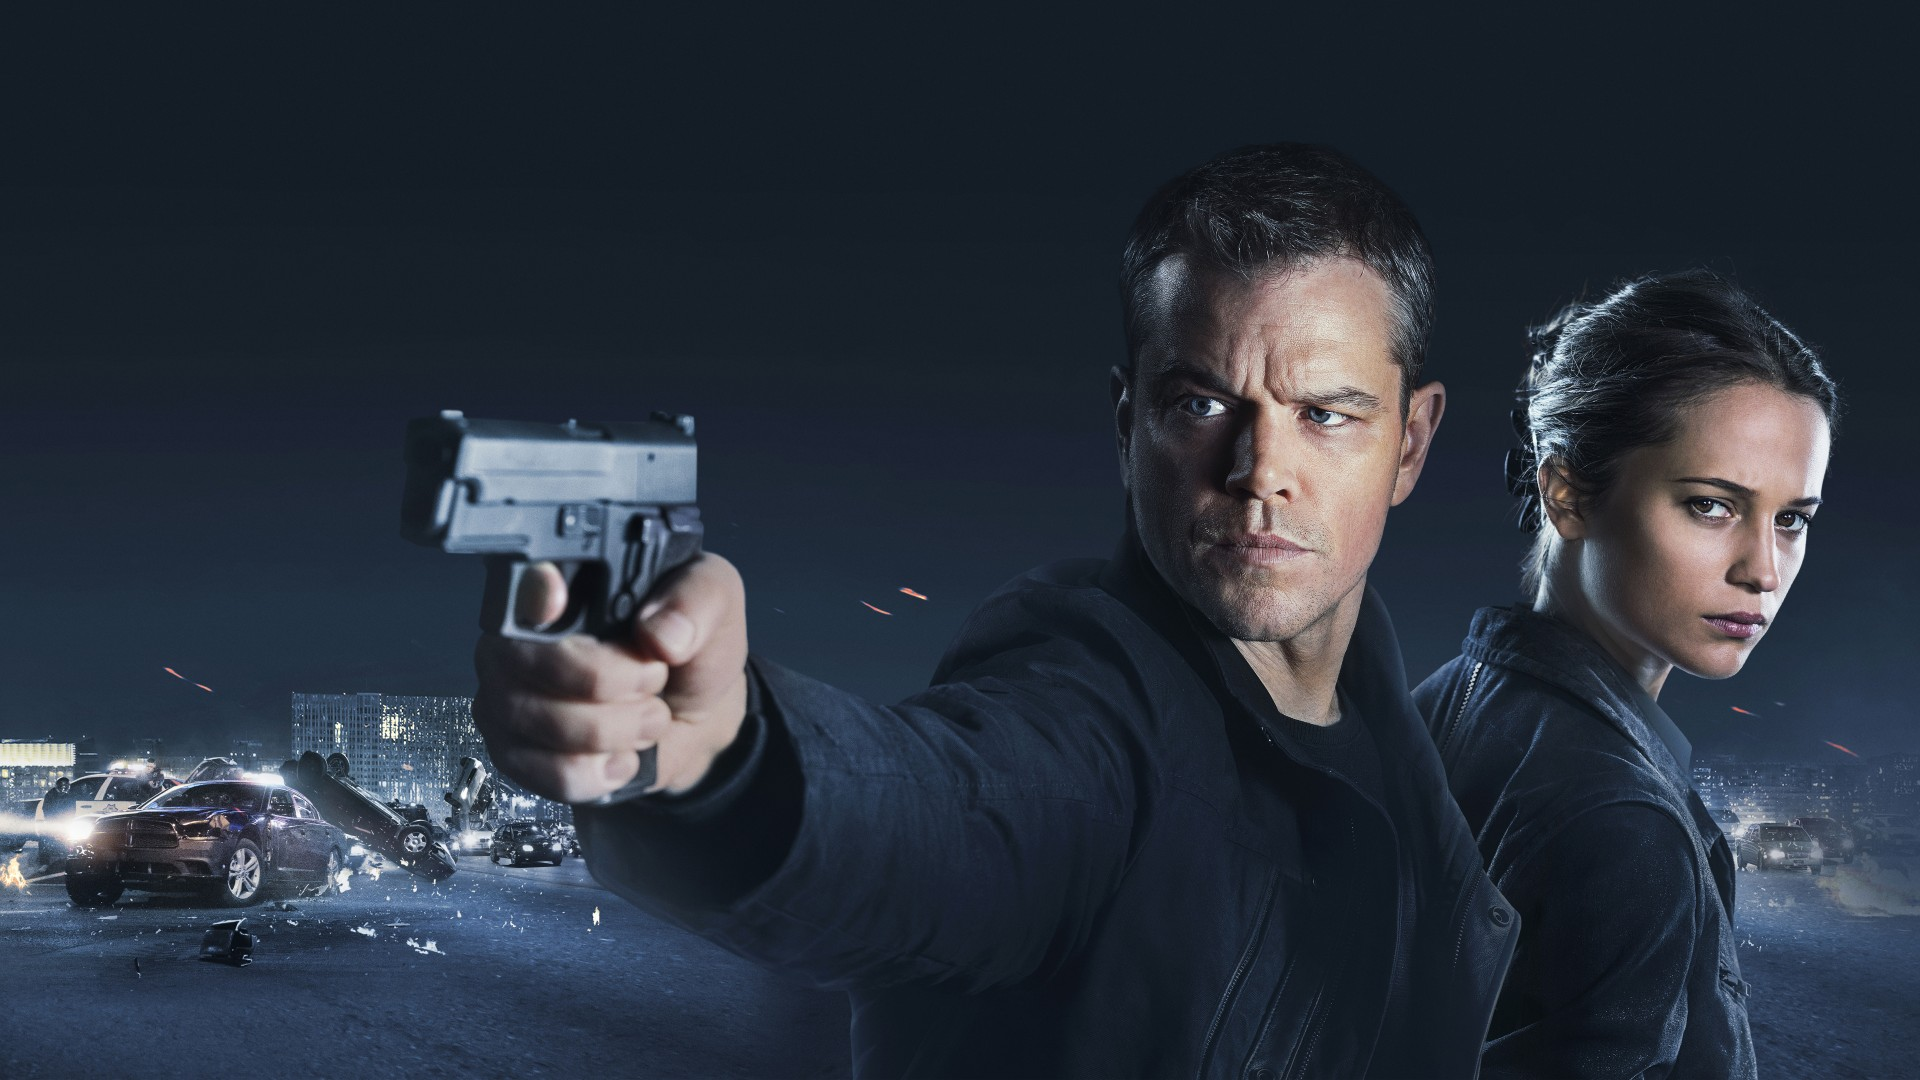 Wallpaper Cars Movie Jason Bourne 2016 8k Wallpapers Hd Wallpapers Id 18292